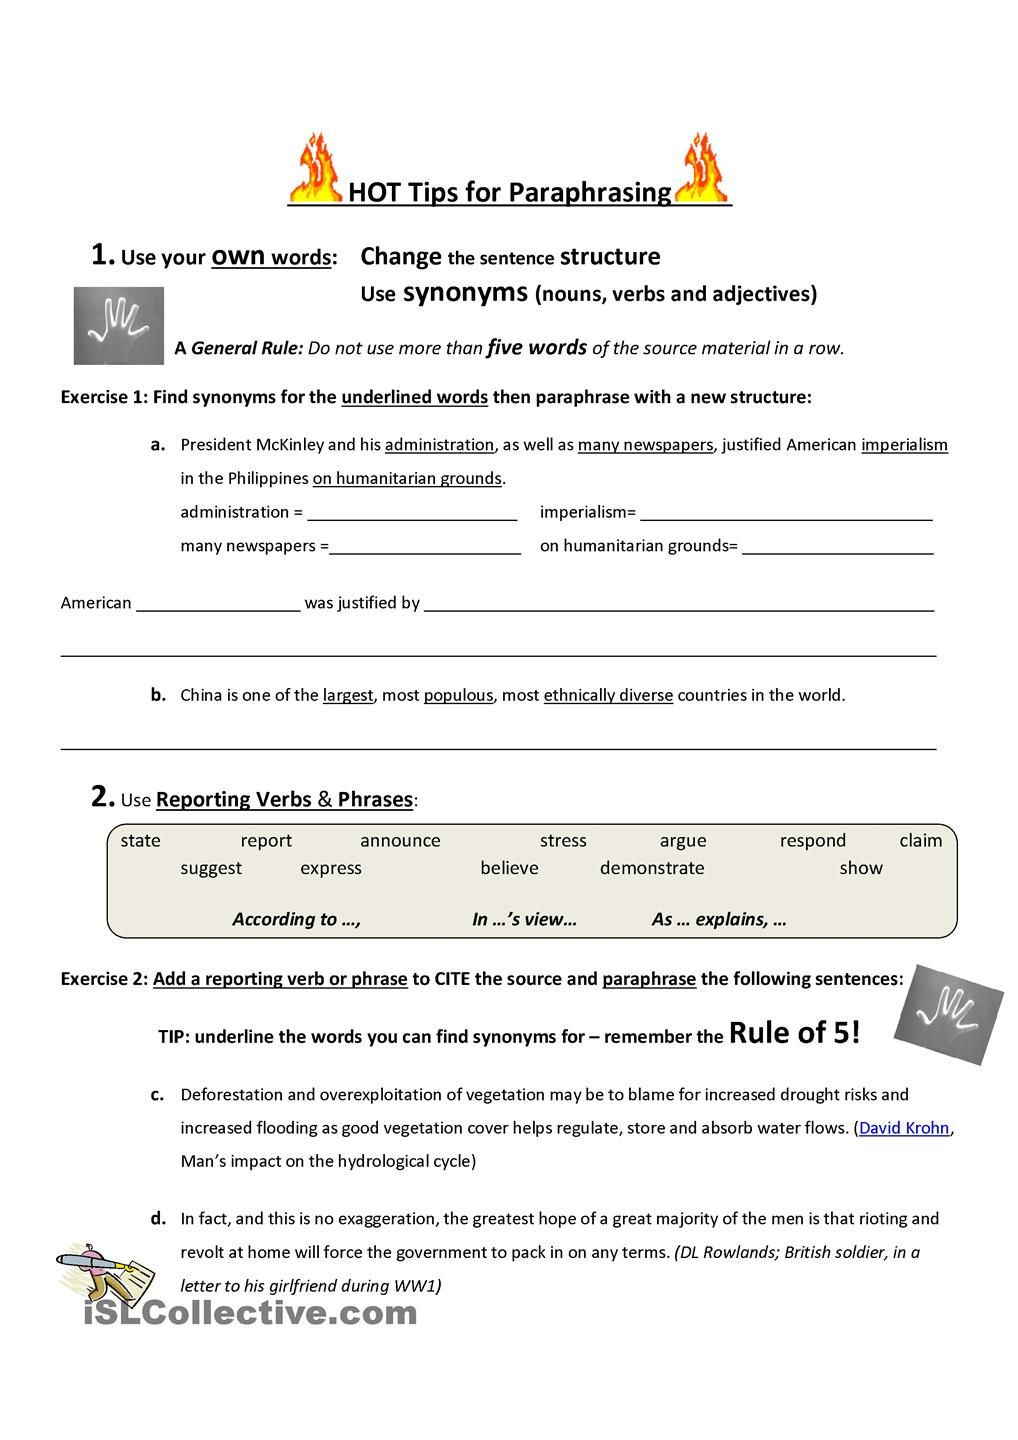 Paraphrasing Worksheets Middle School Hot Tips for Paraphrasing